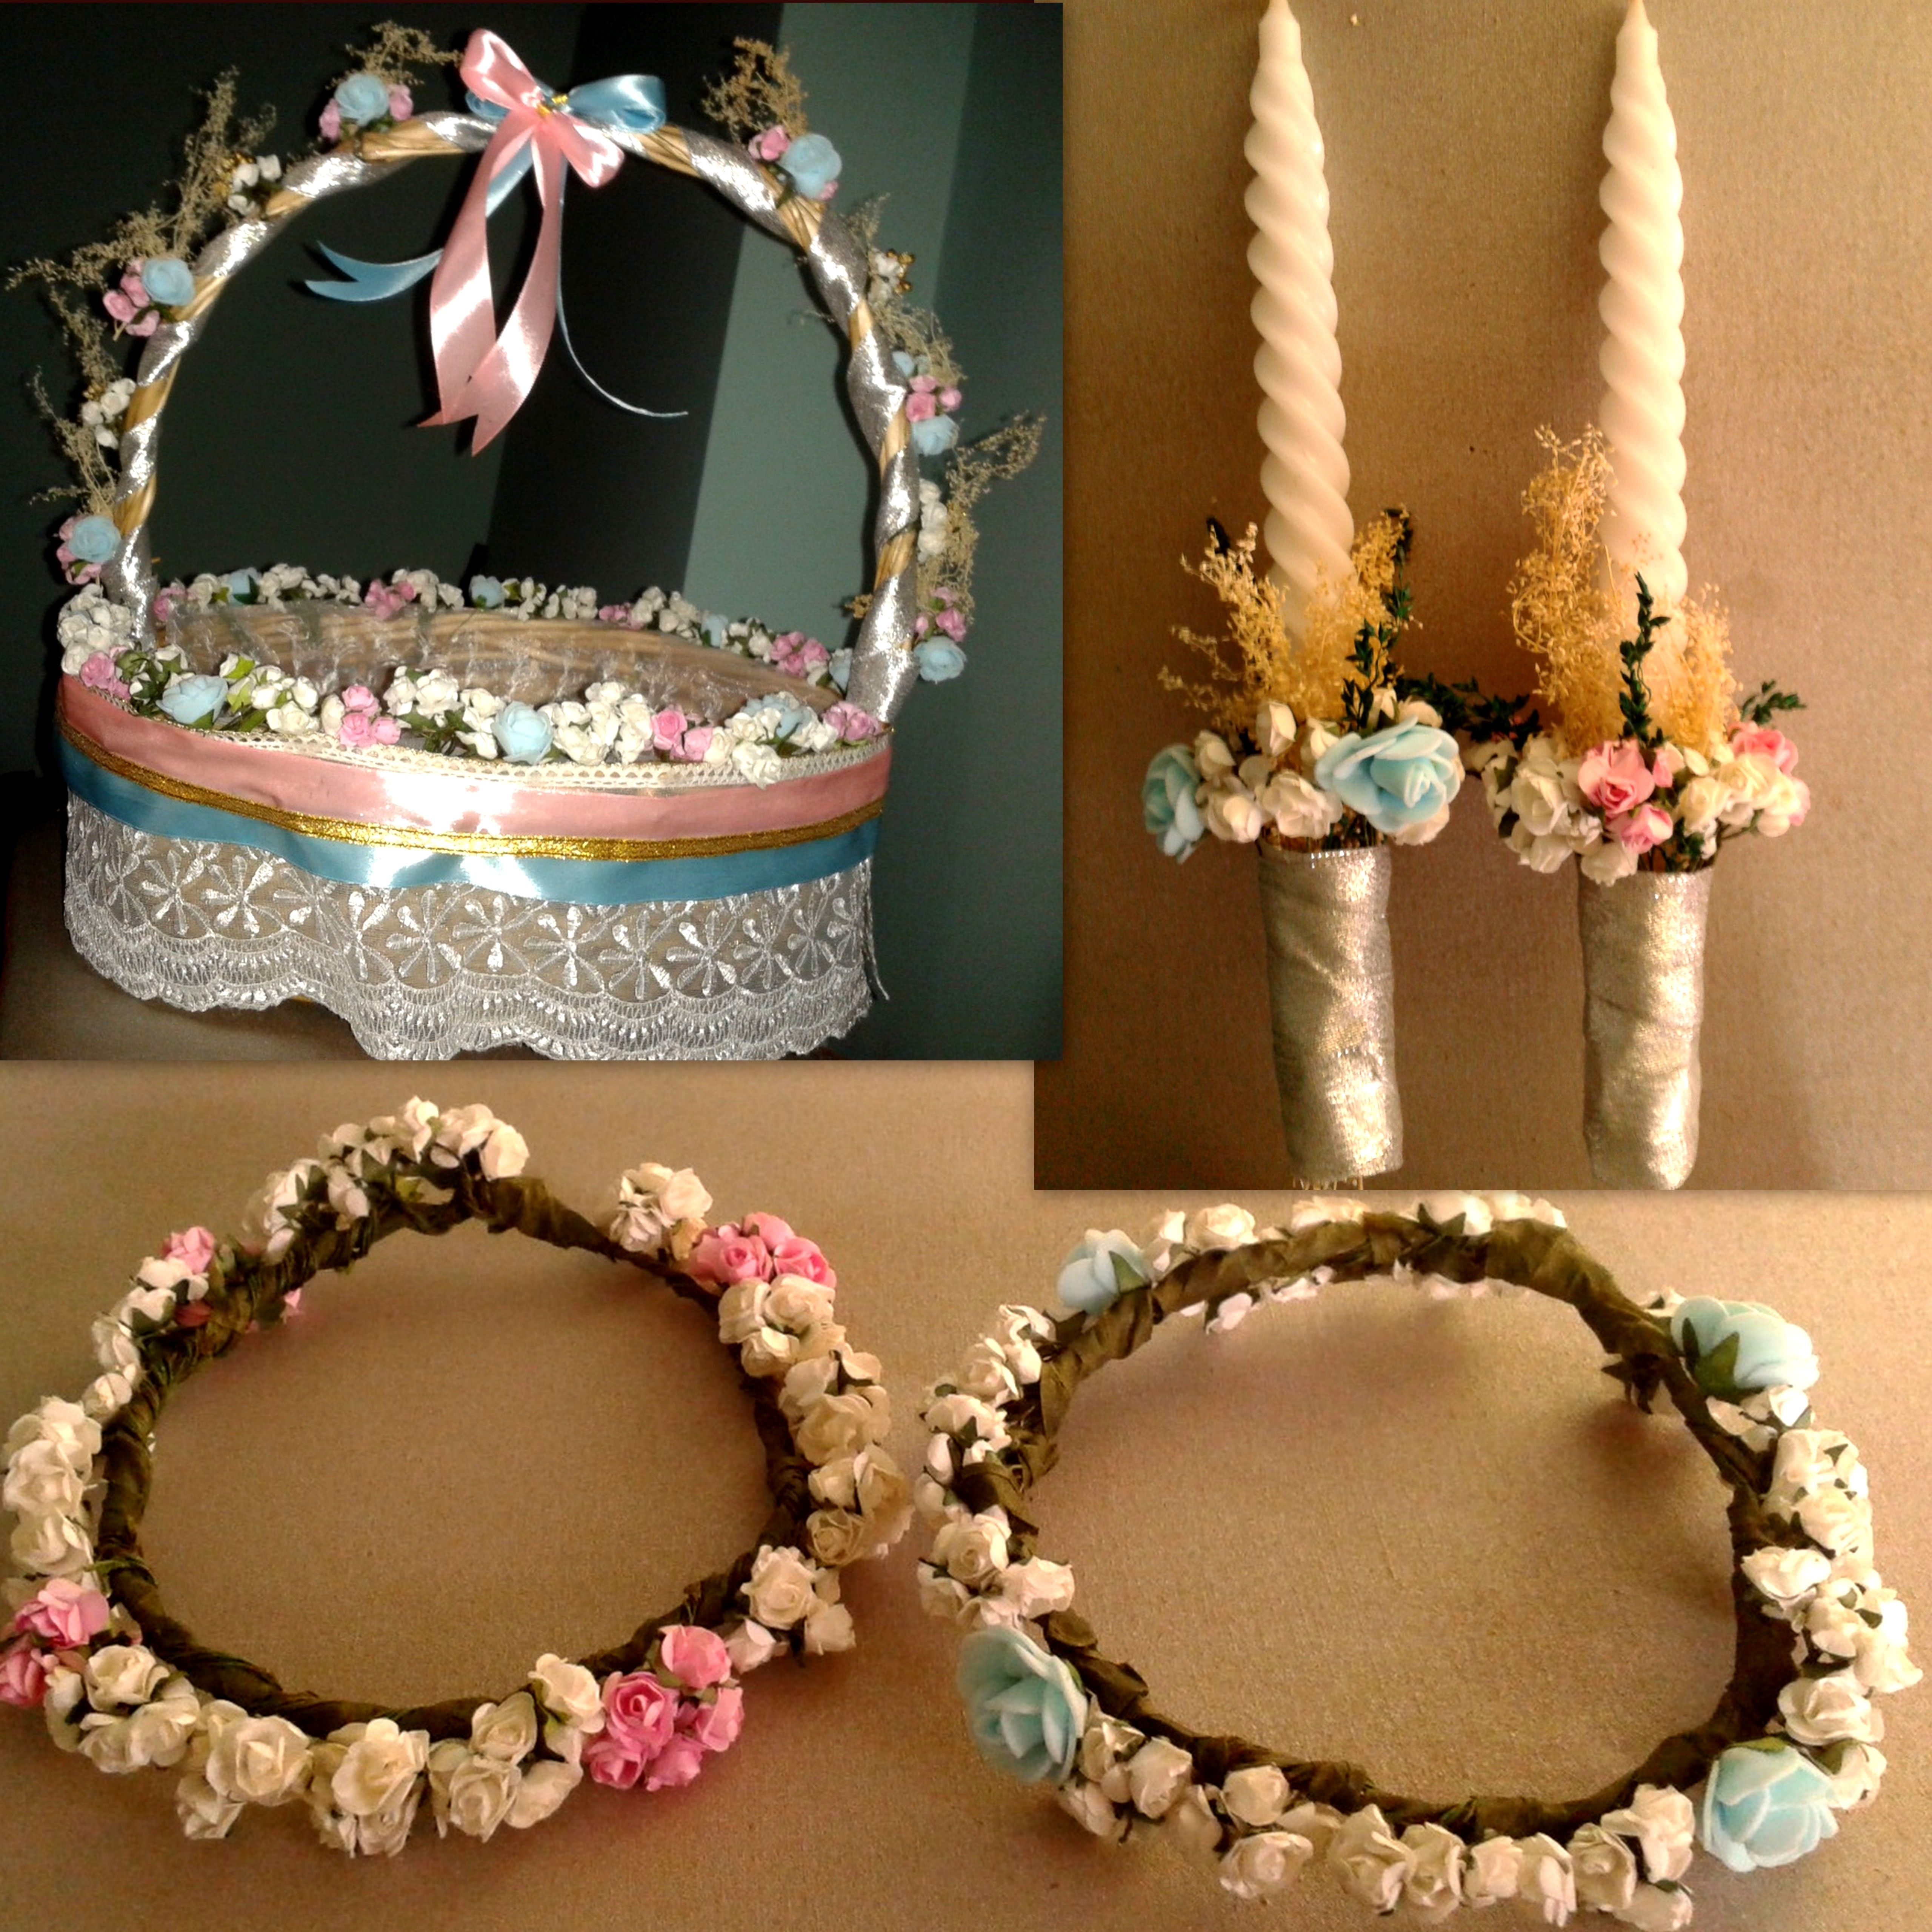 How To Decorate A Cane Decorated Cane Basket Candles And Crown For Baptism Baptism